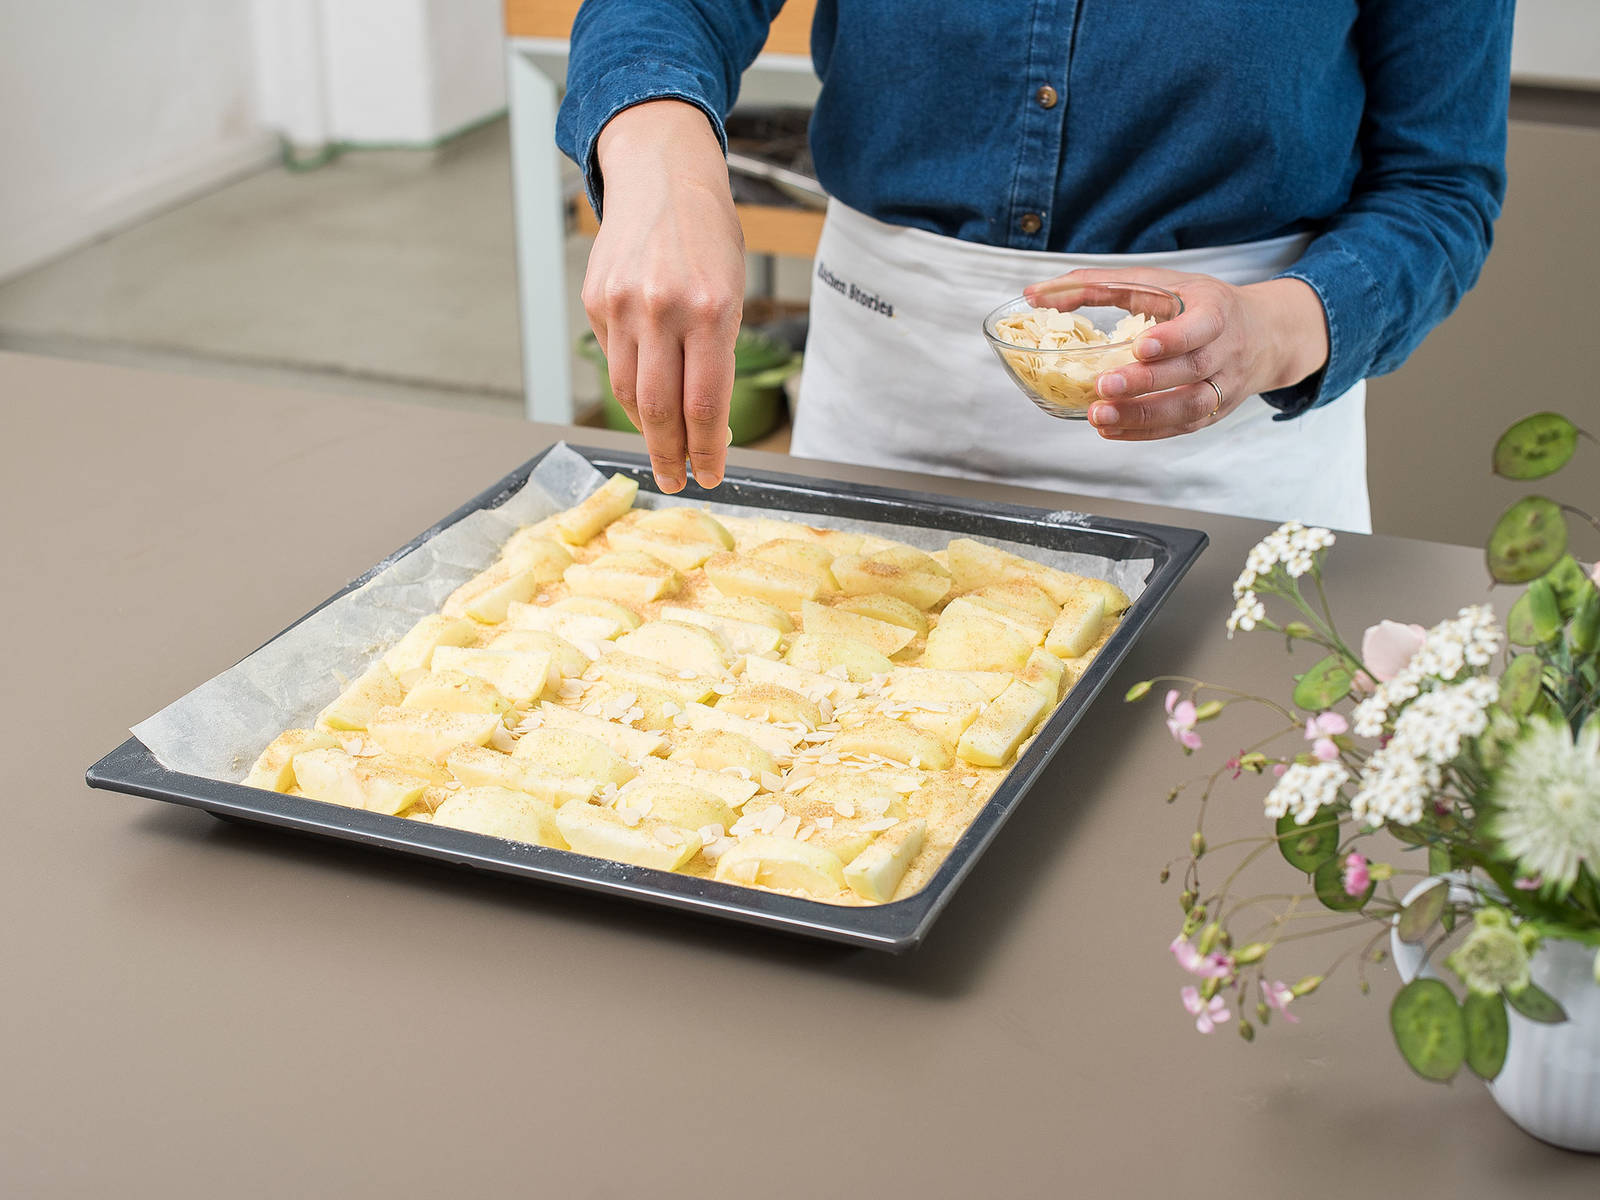 Spread the batter evenly over the prepared baking sheet, distribute apples on top, and sprinkle with almond flakes.